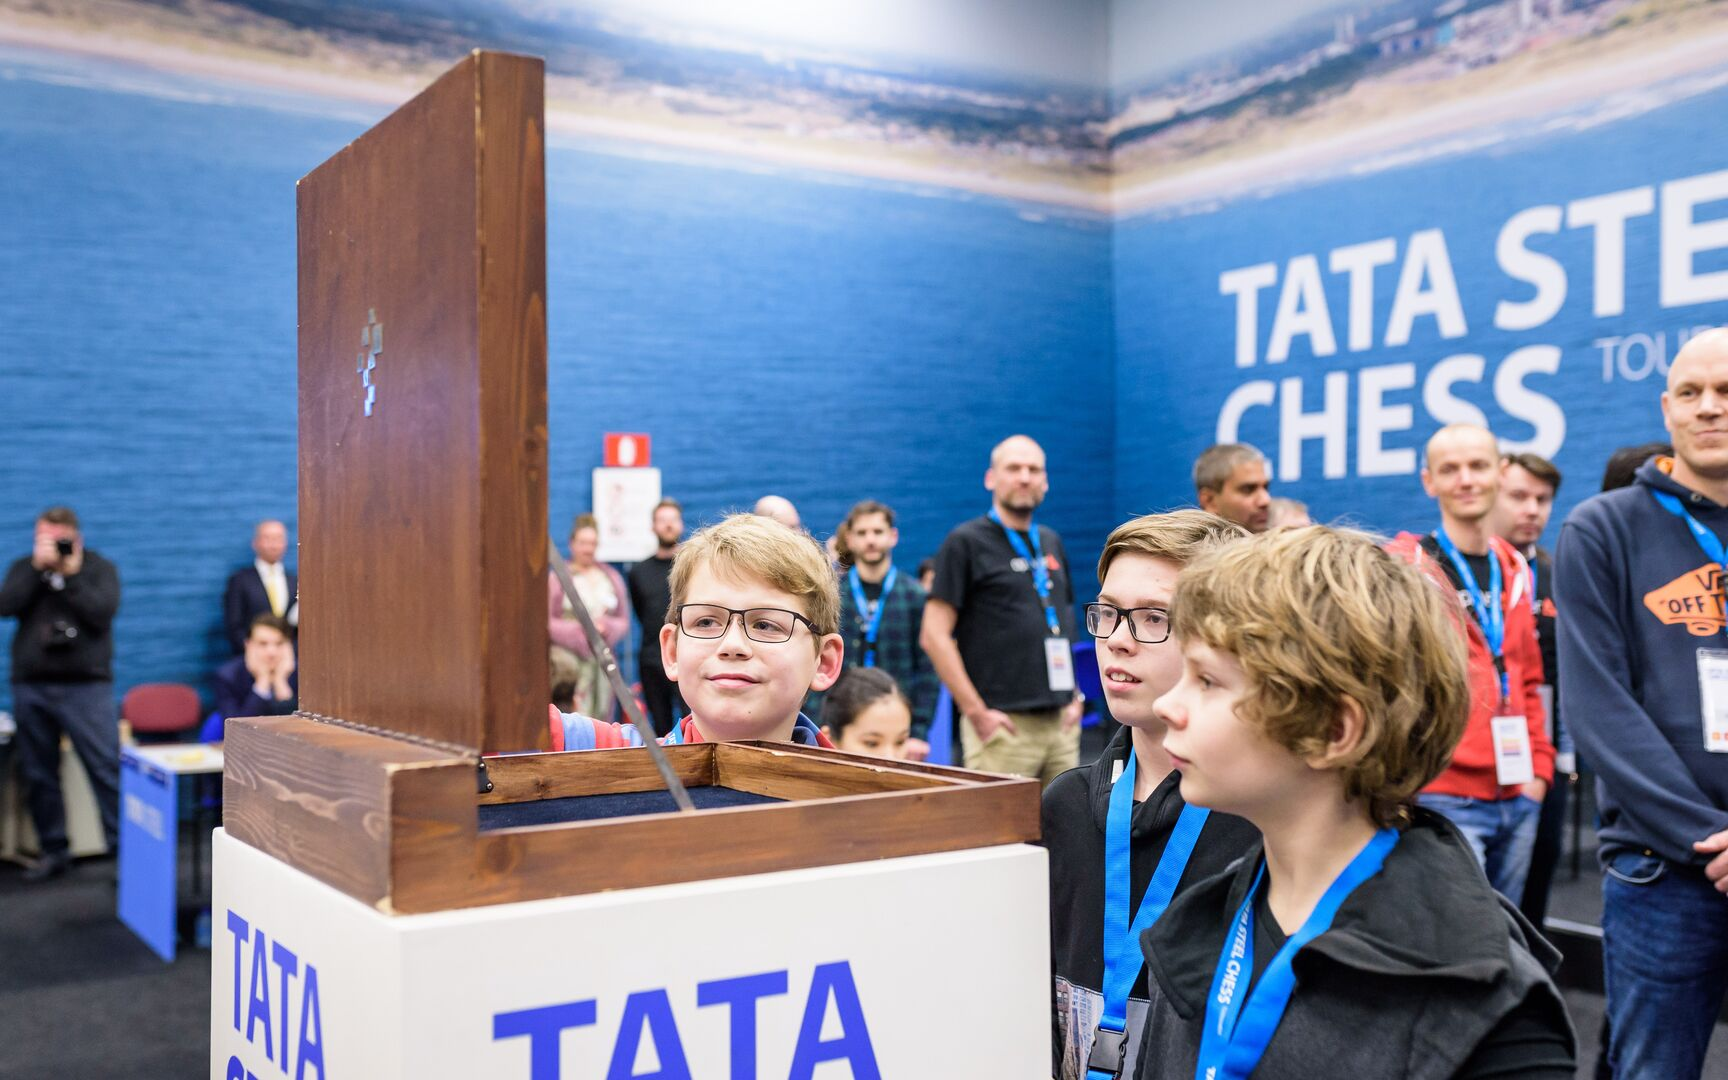 Tata Steel chess tournament, Wijk aan Zee